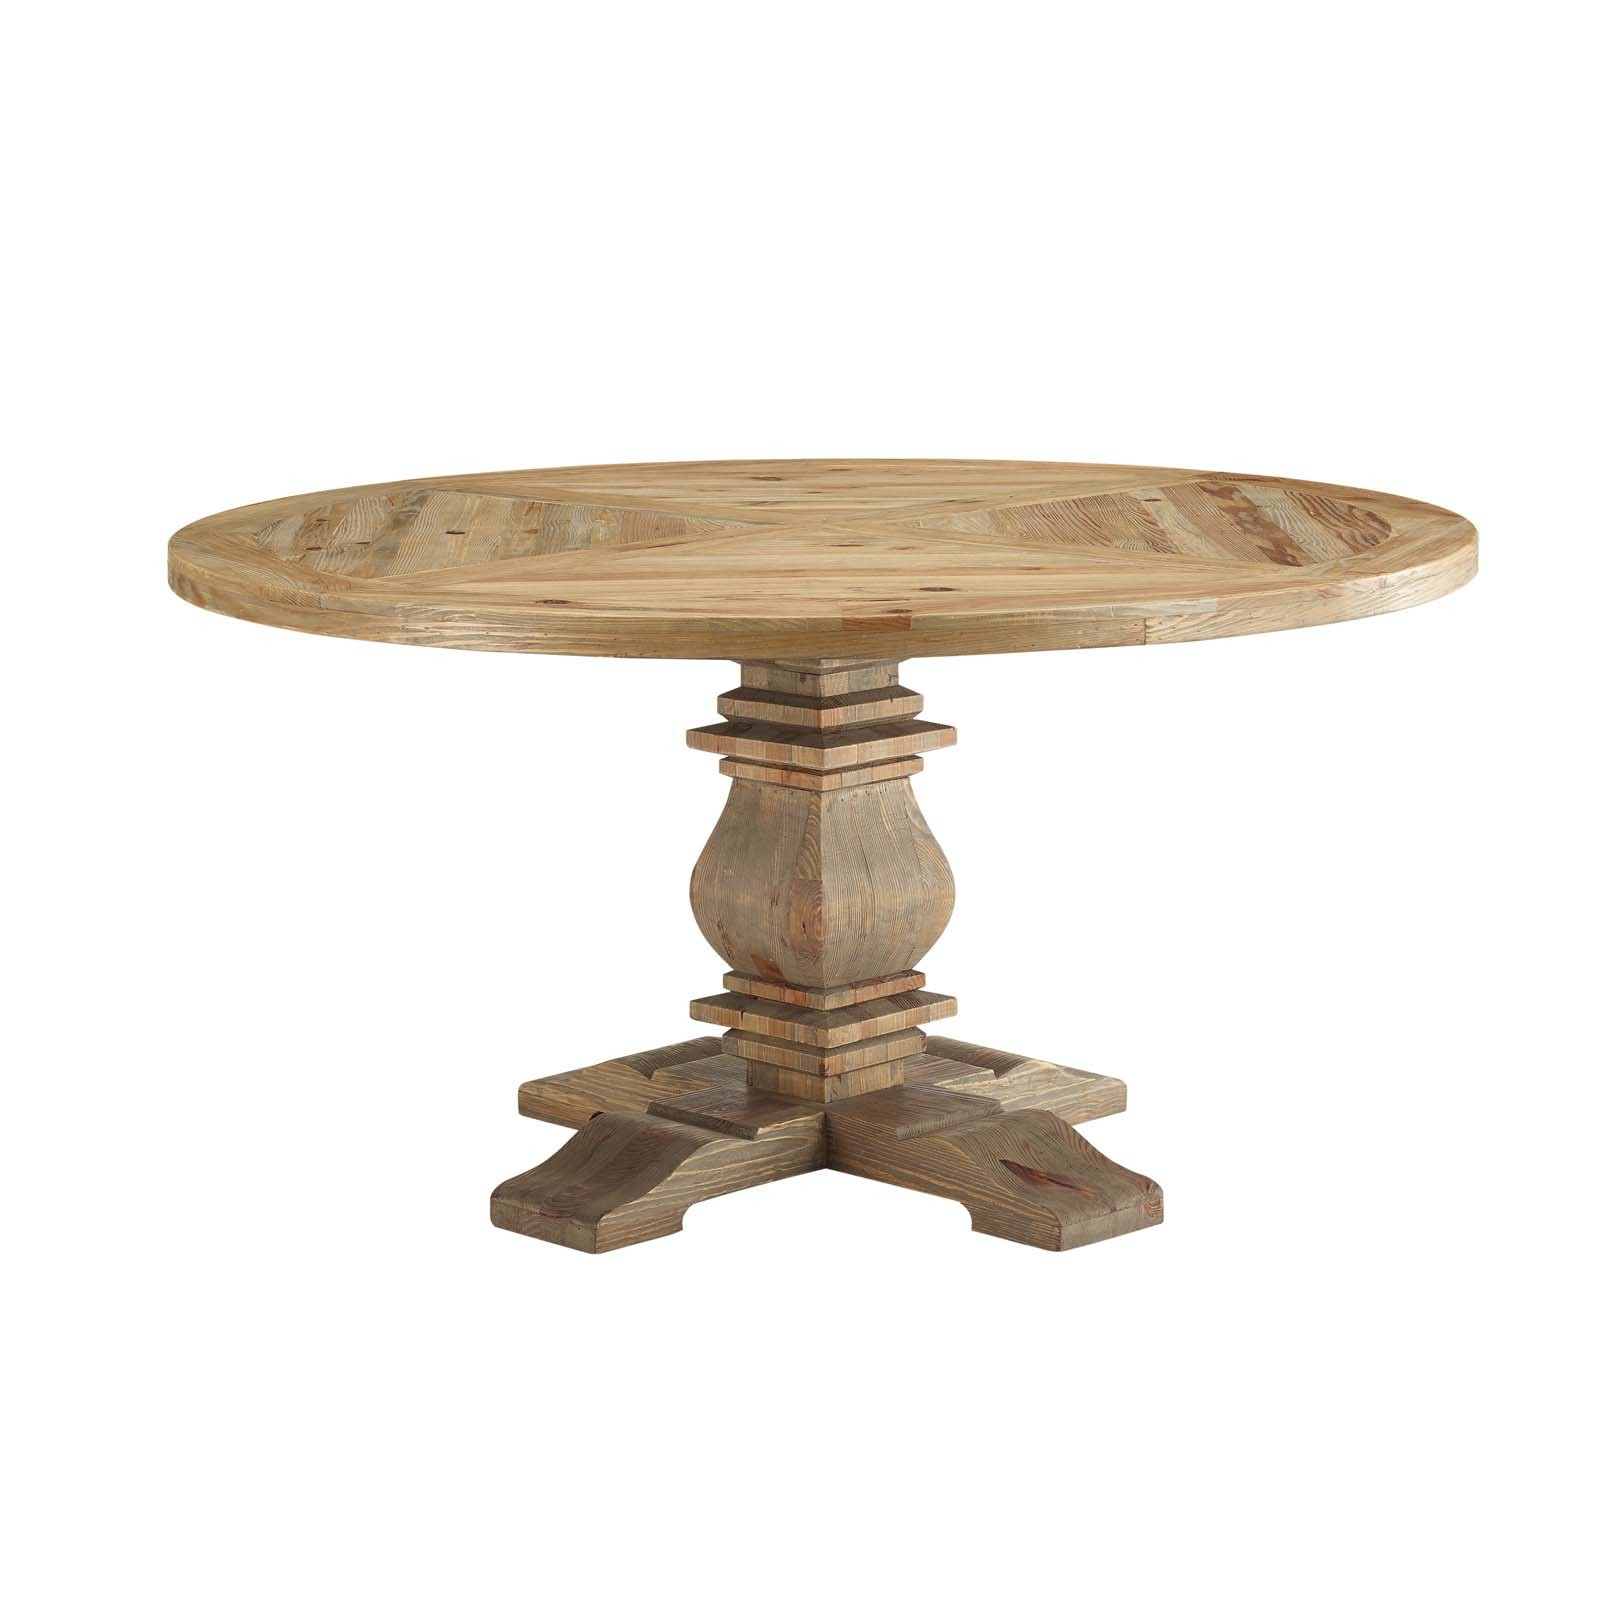 "Column 59"" Round Pine Wood Dining Table in Brown"